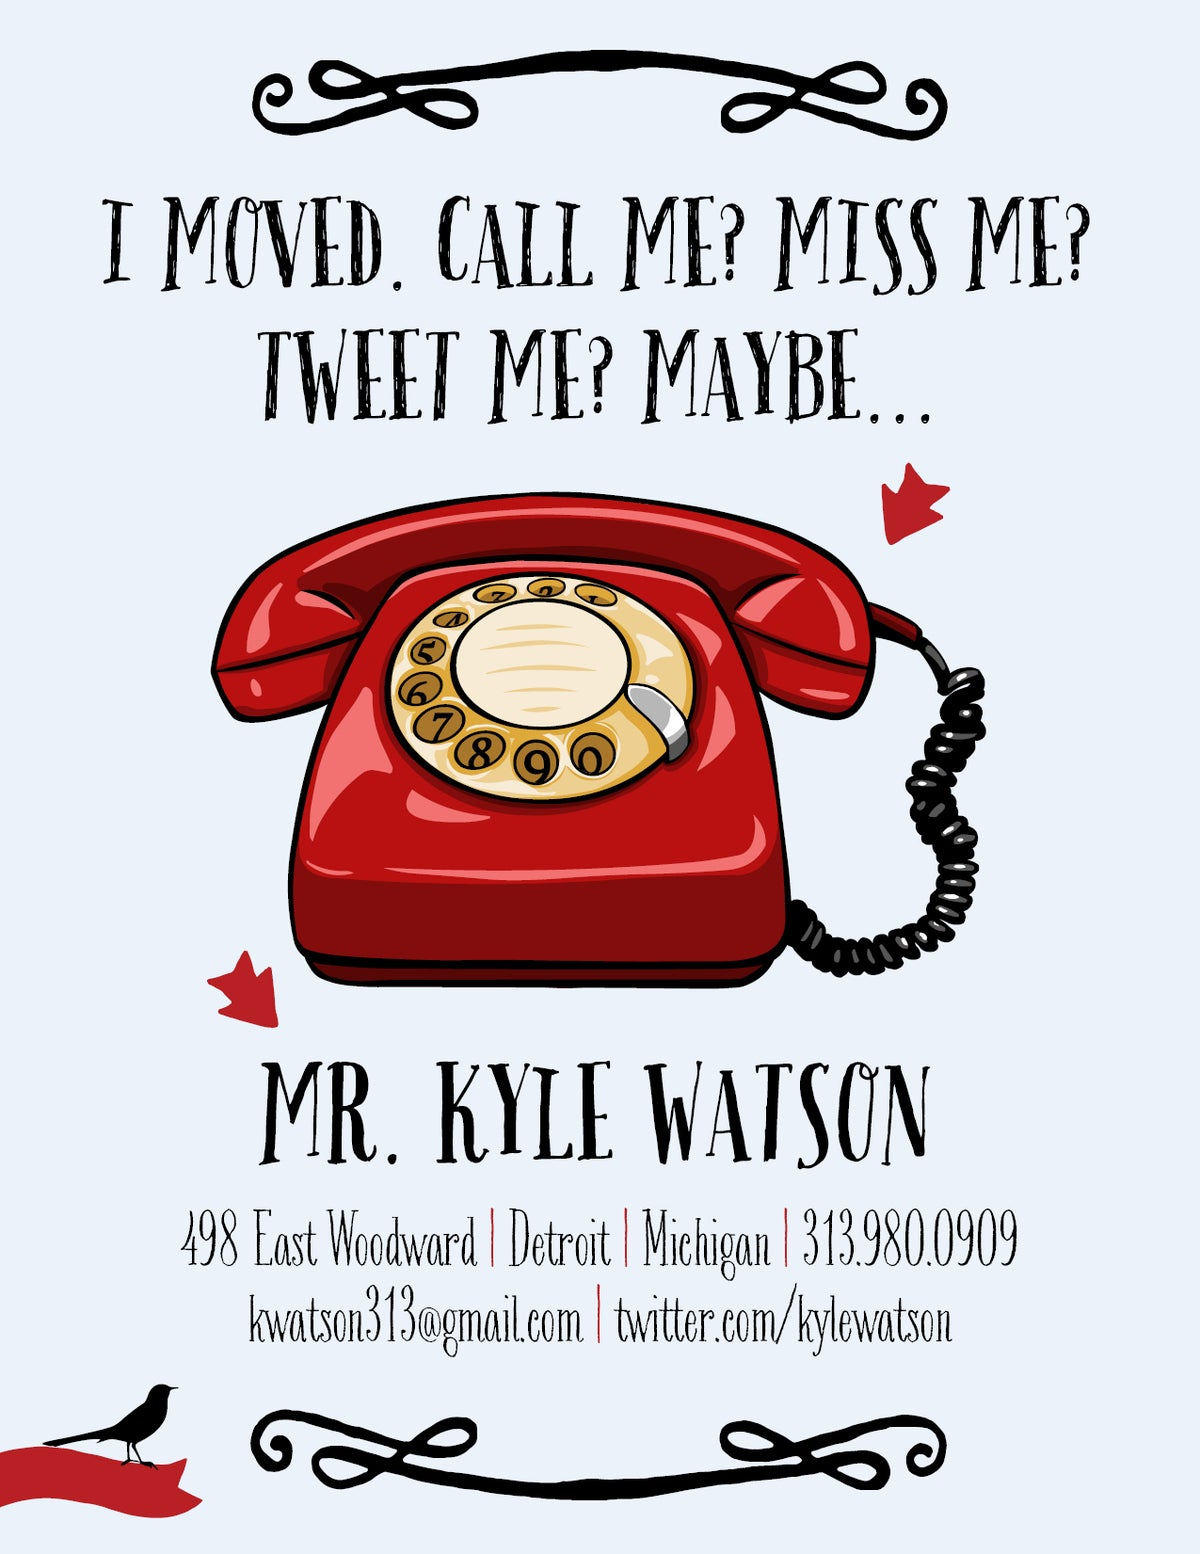 I Moved. Miss Me? Call Me? Tweet Me? Maybe.... Cards